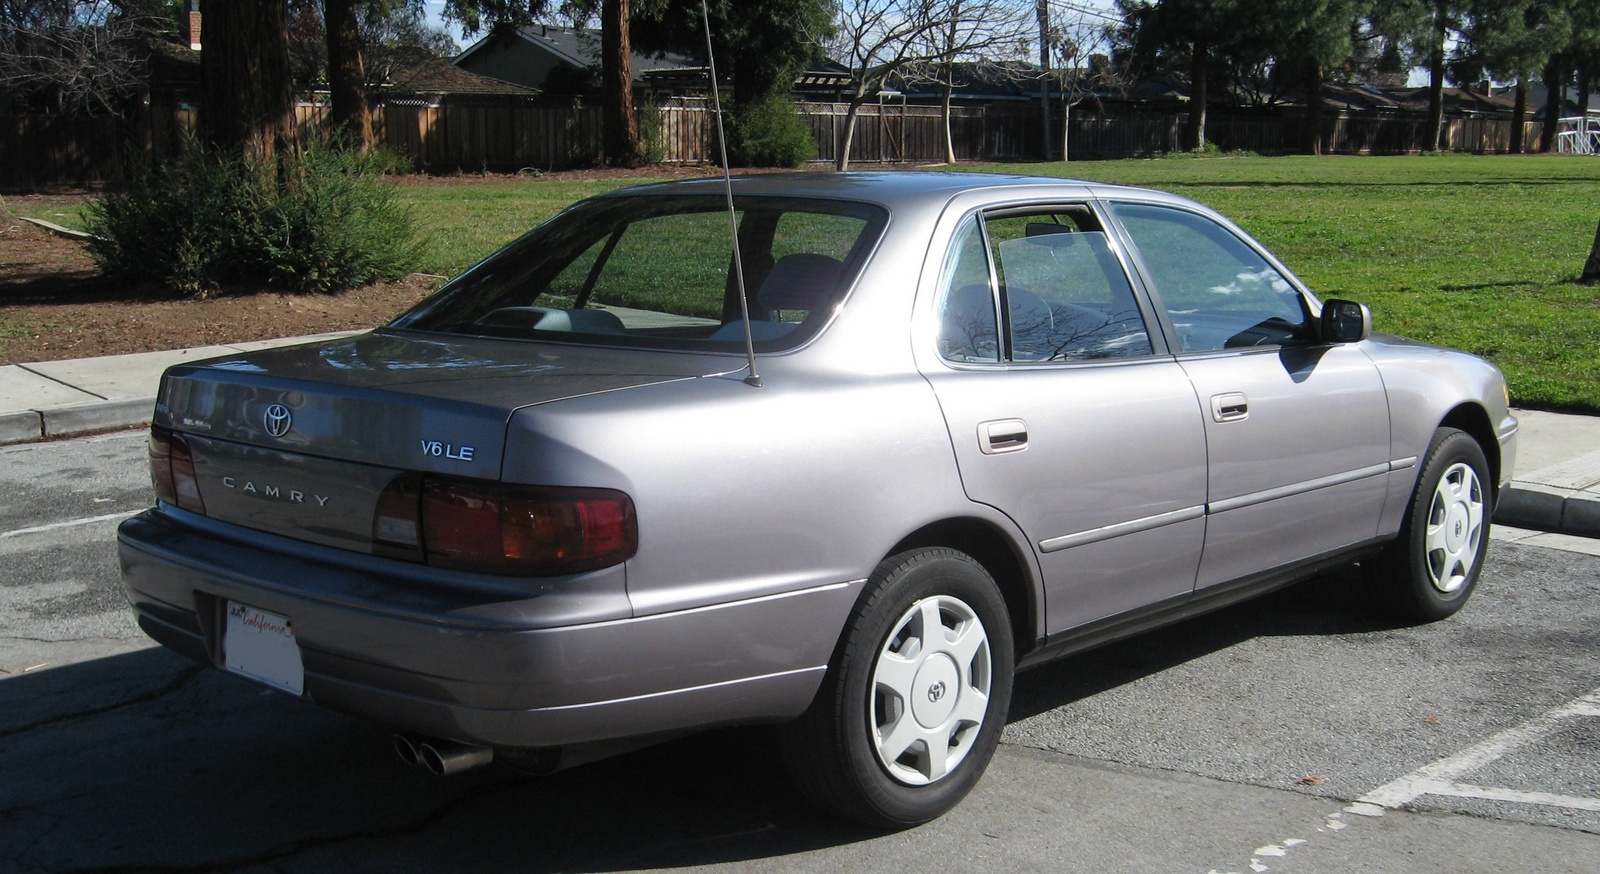 1996 Toyota Camry Pictures Cargurus